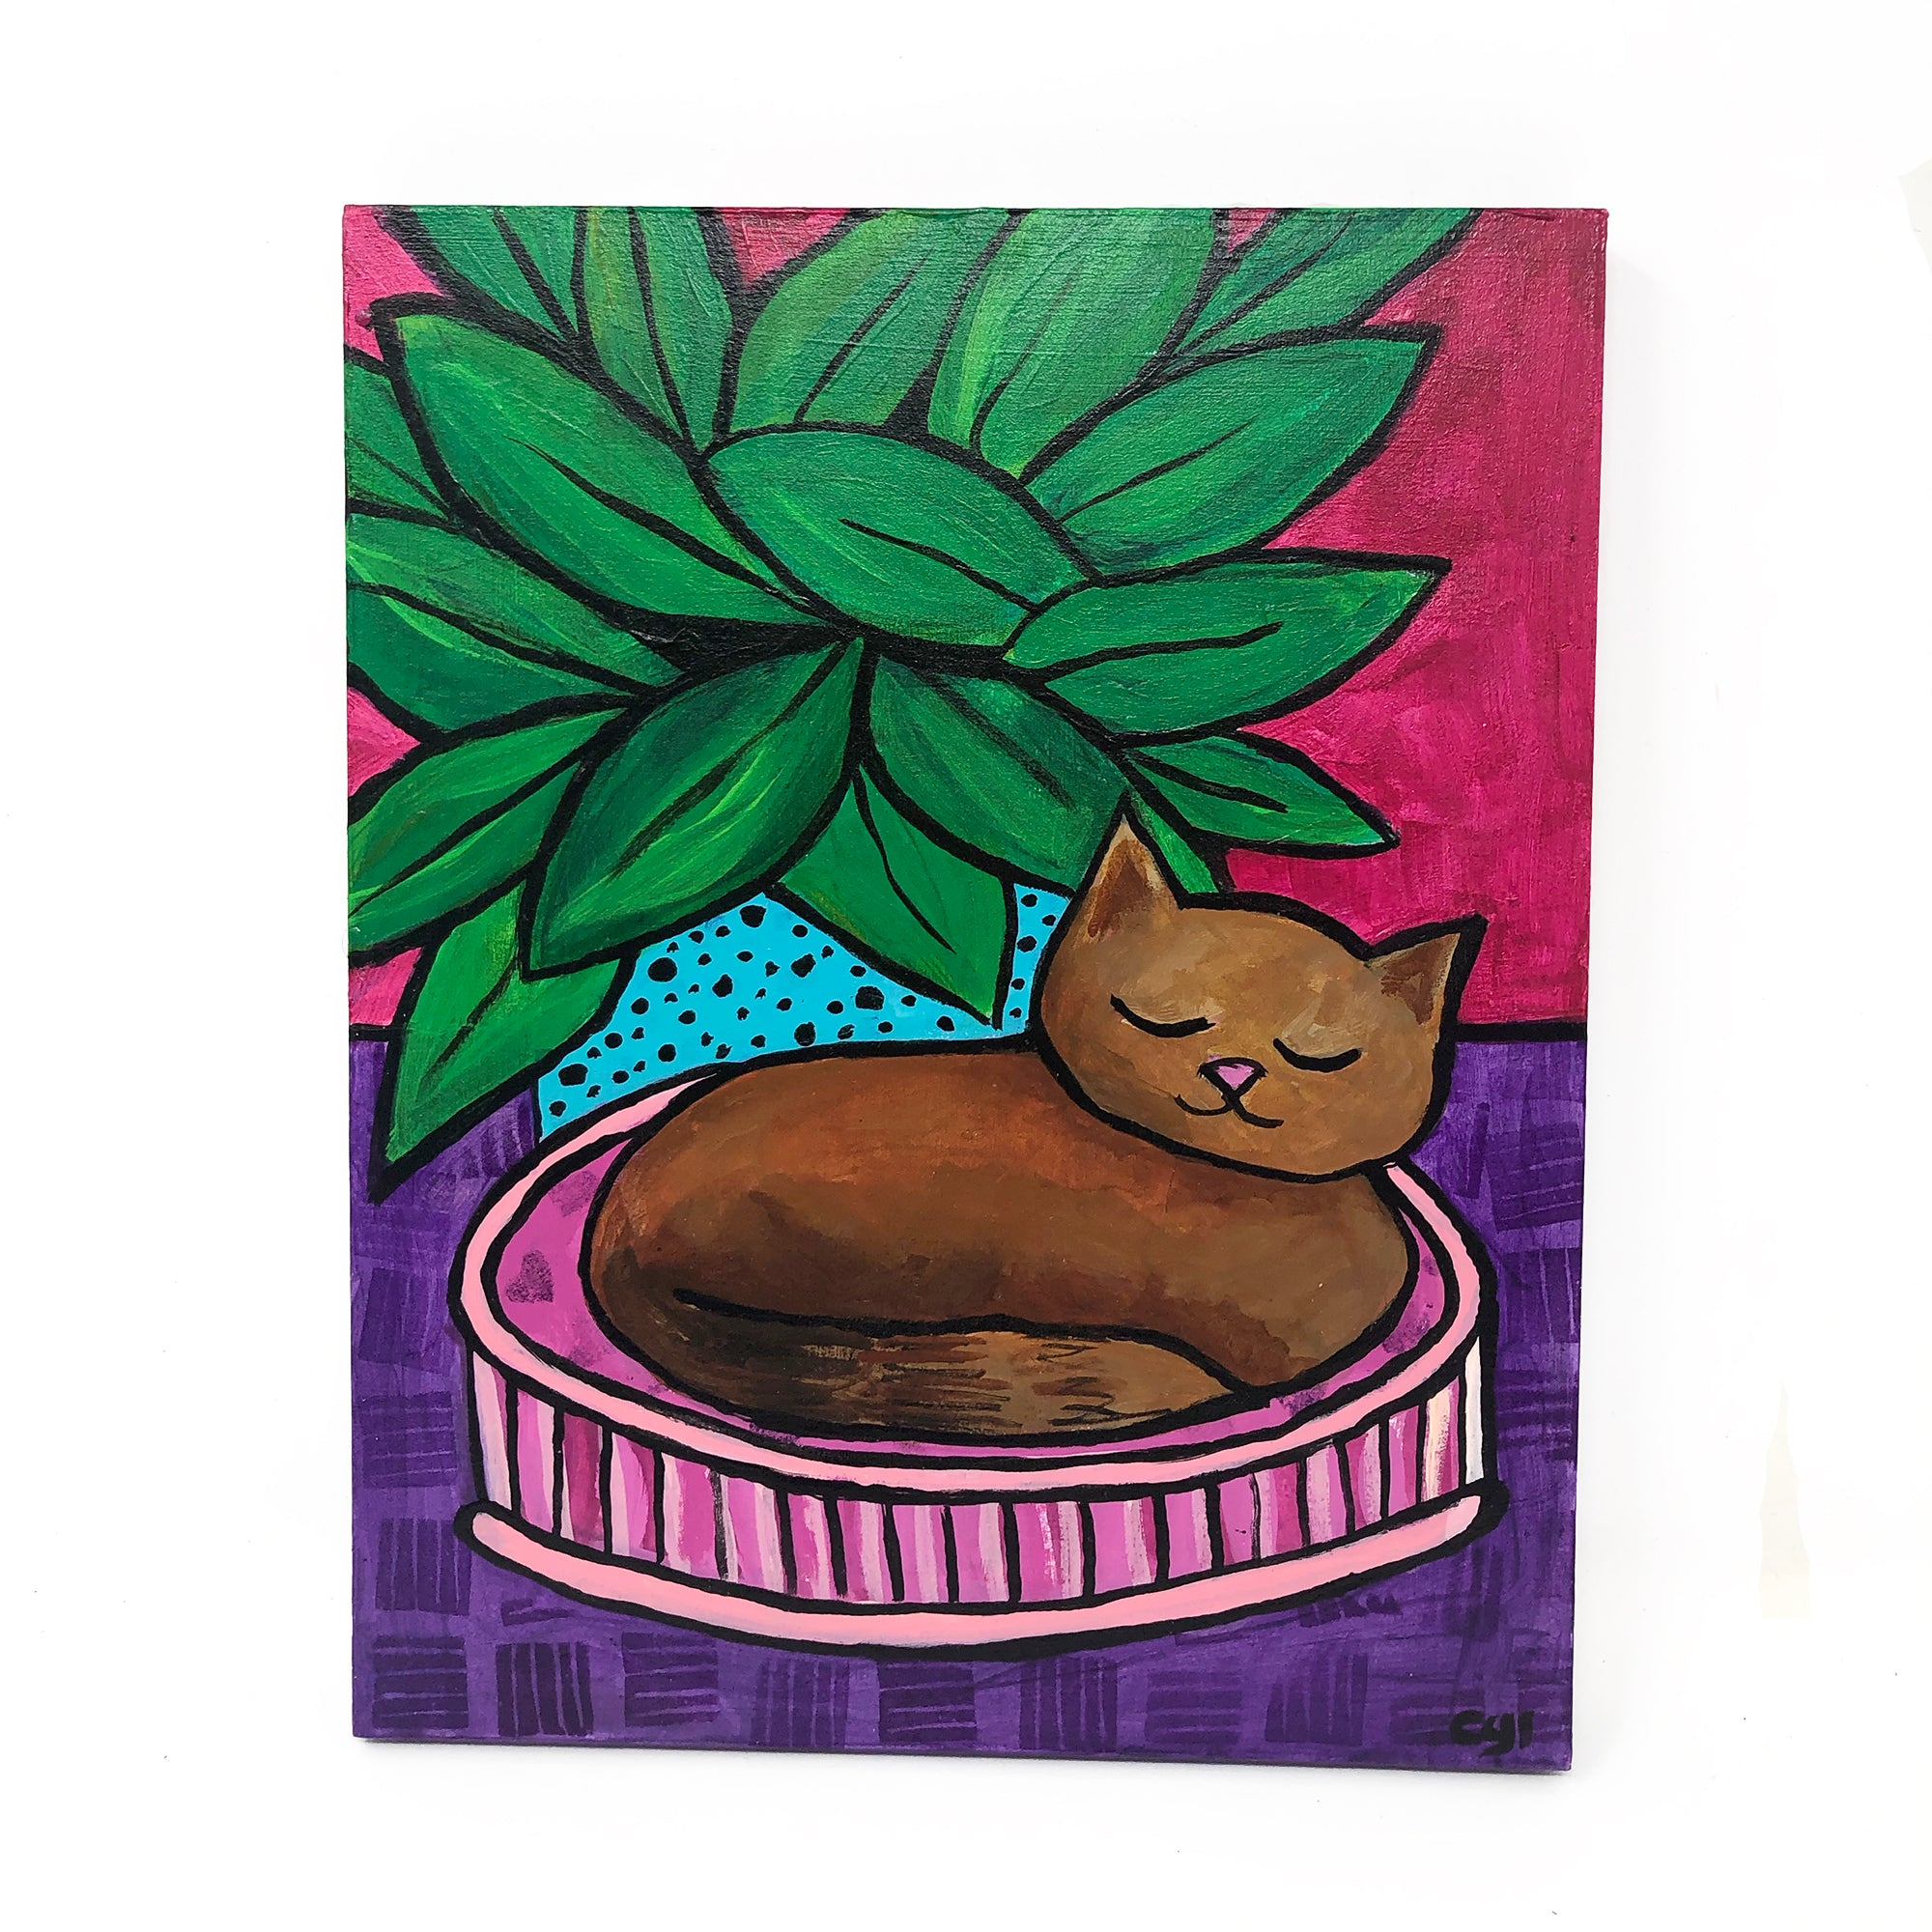 Cat Nap by Claudine Intner - Acrylic painting on cradled wood board. 10 x 8 inches. 2020